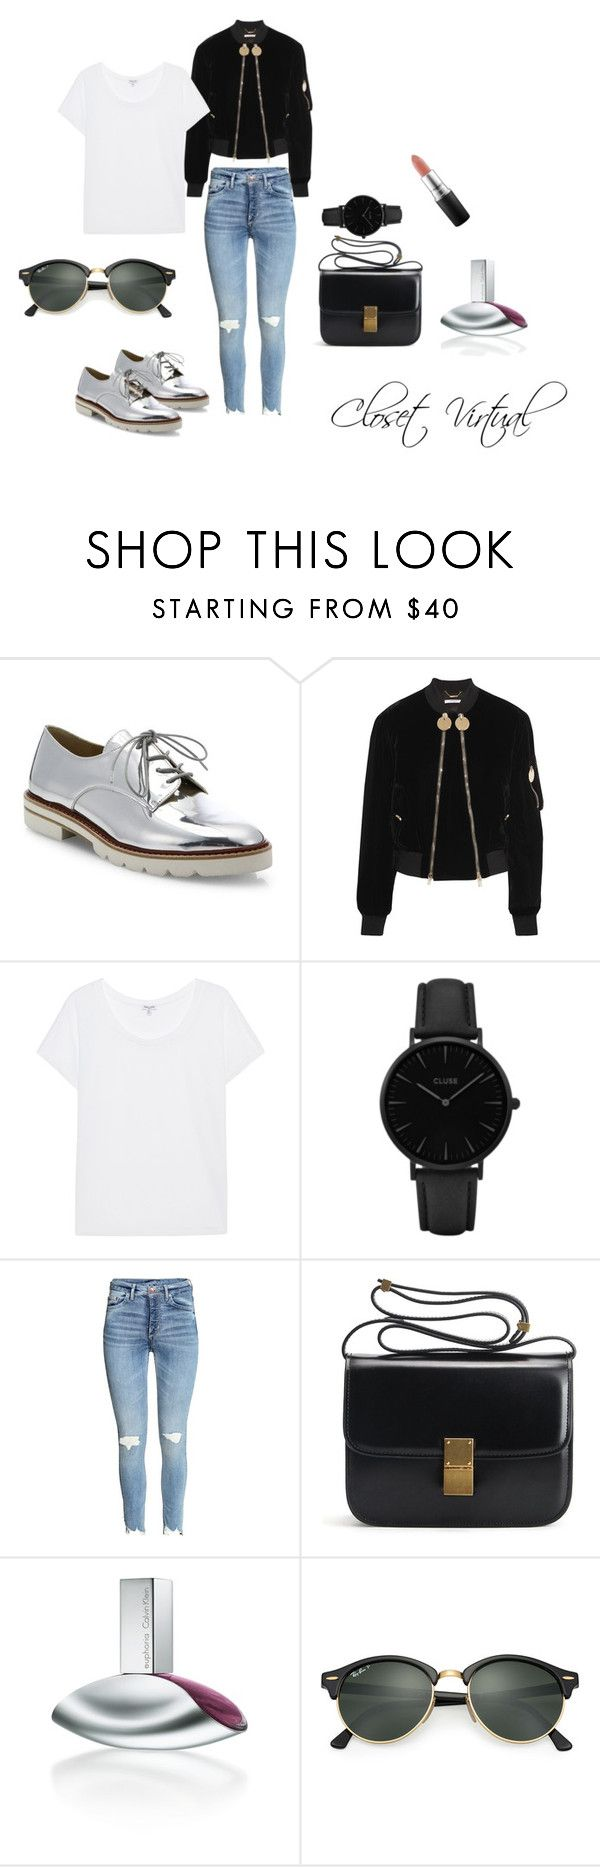 Casual every day by ednamarizete on Polyvore featuring Splendid, Givenchy, Stuart Weitzman, CLUSE, Ray-Ban, MAC Cosmetics and Calvin Klein